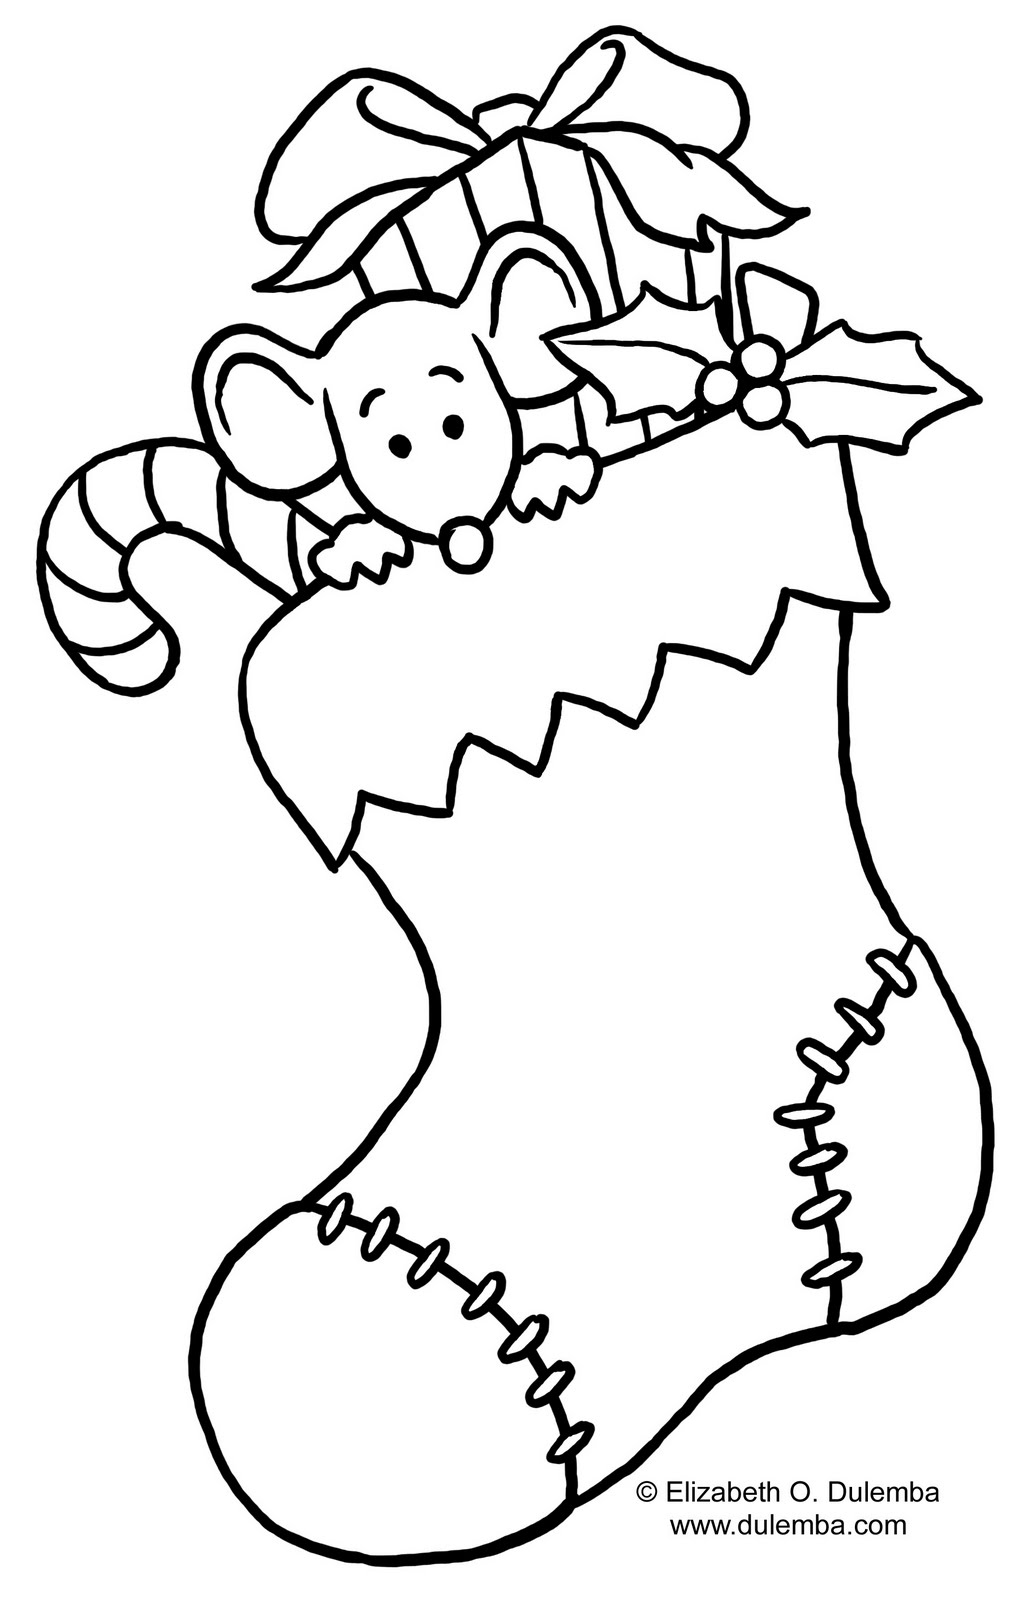 Sly image with holiday coloring pages printable free